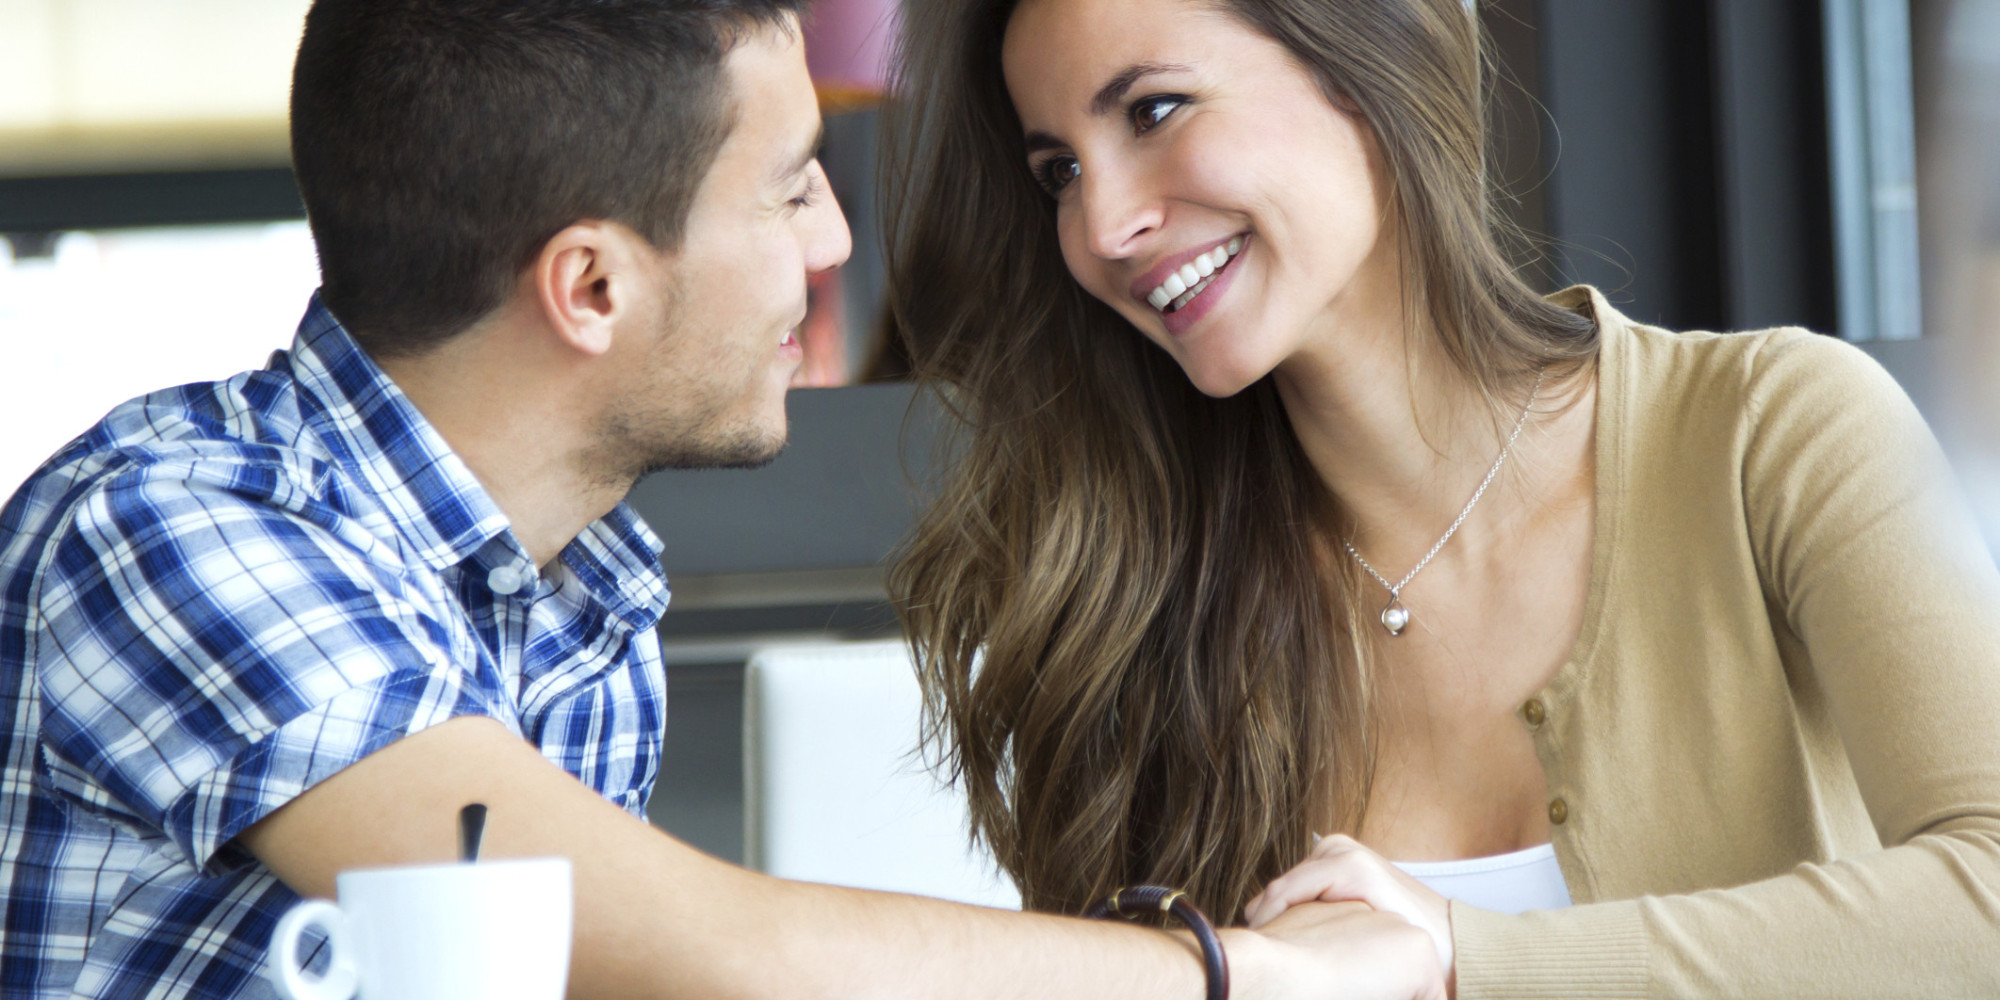 Are You In Love? Ten Signs That Shows Strong Chemistry Between Two People